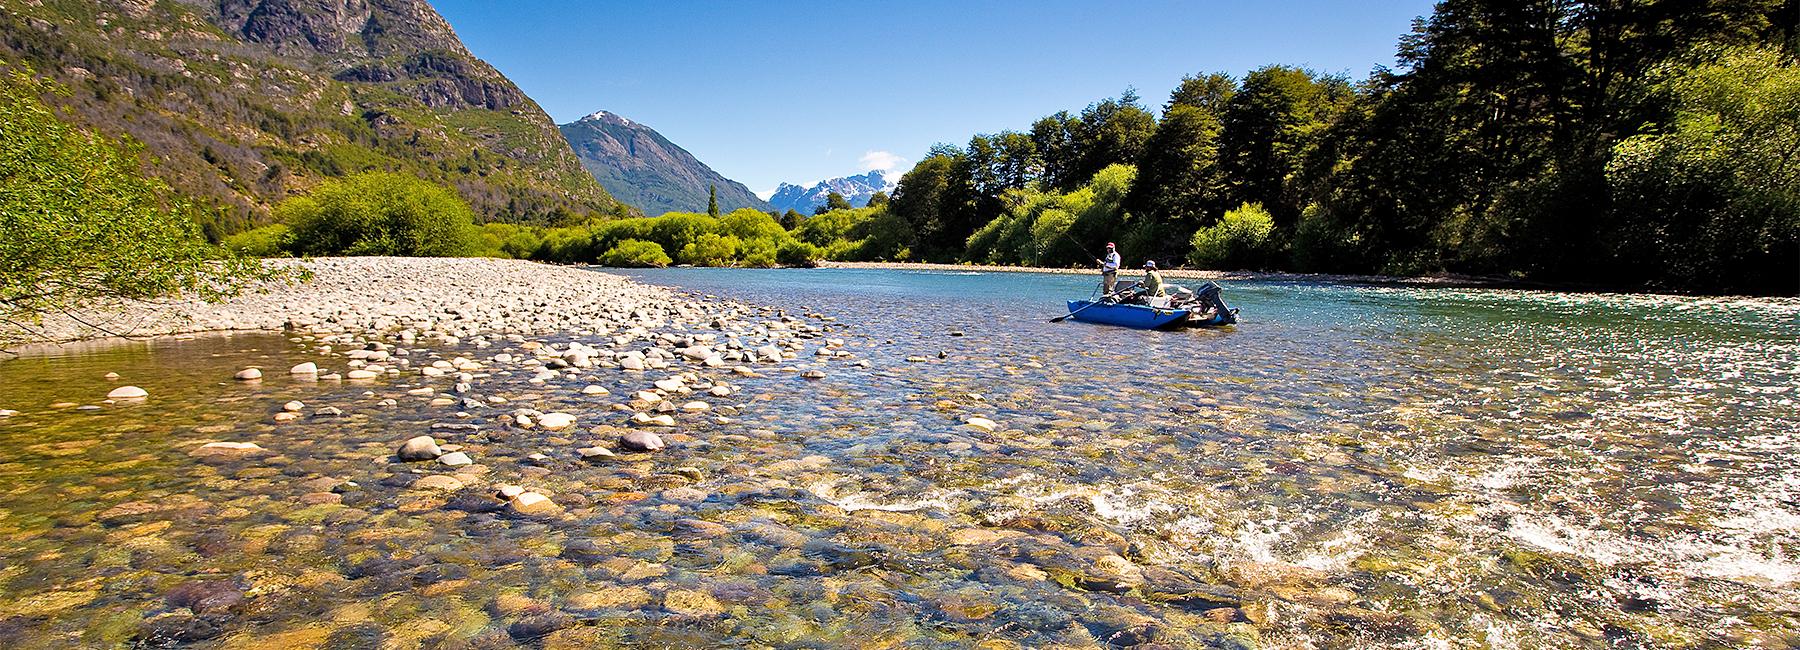 5 reasons to fly fish Chile